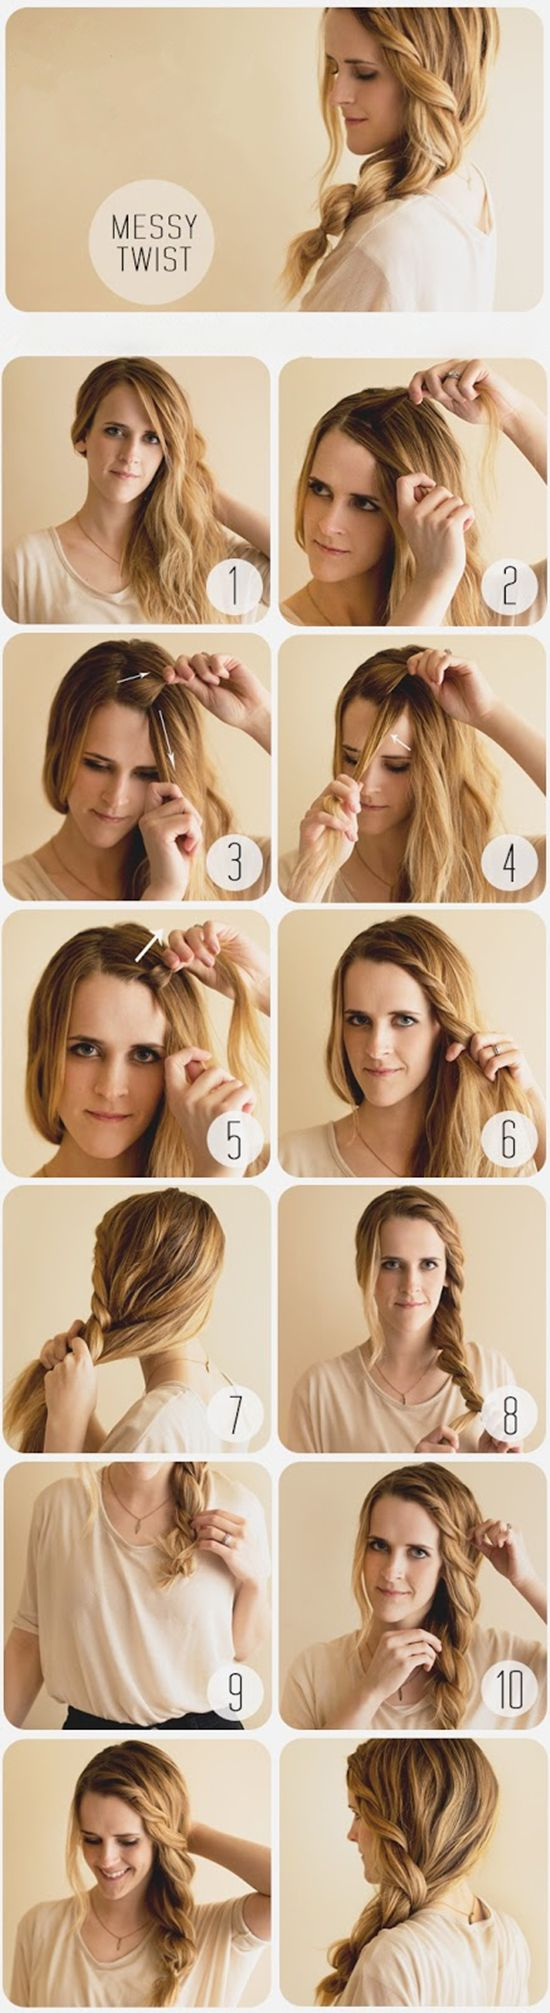 simple messy twist tutorial with clip on blonde straight hair extension